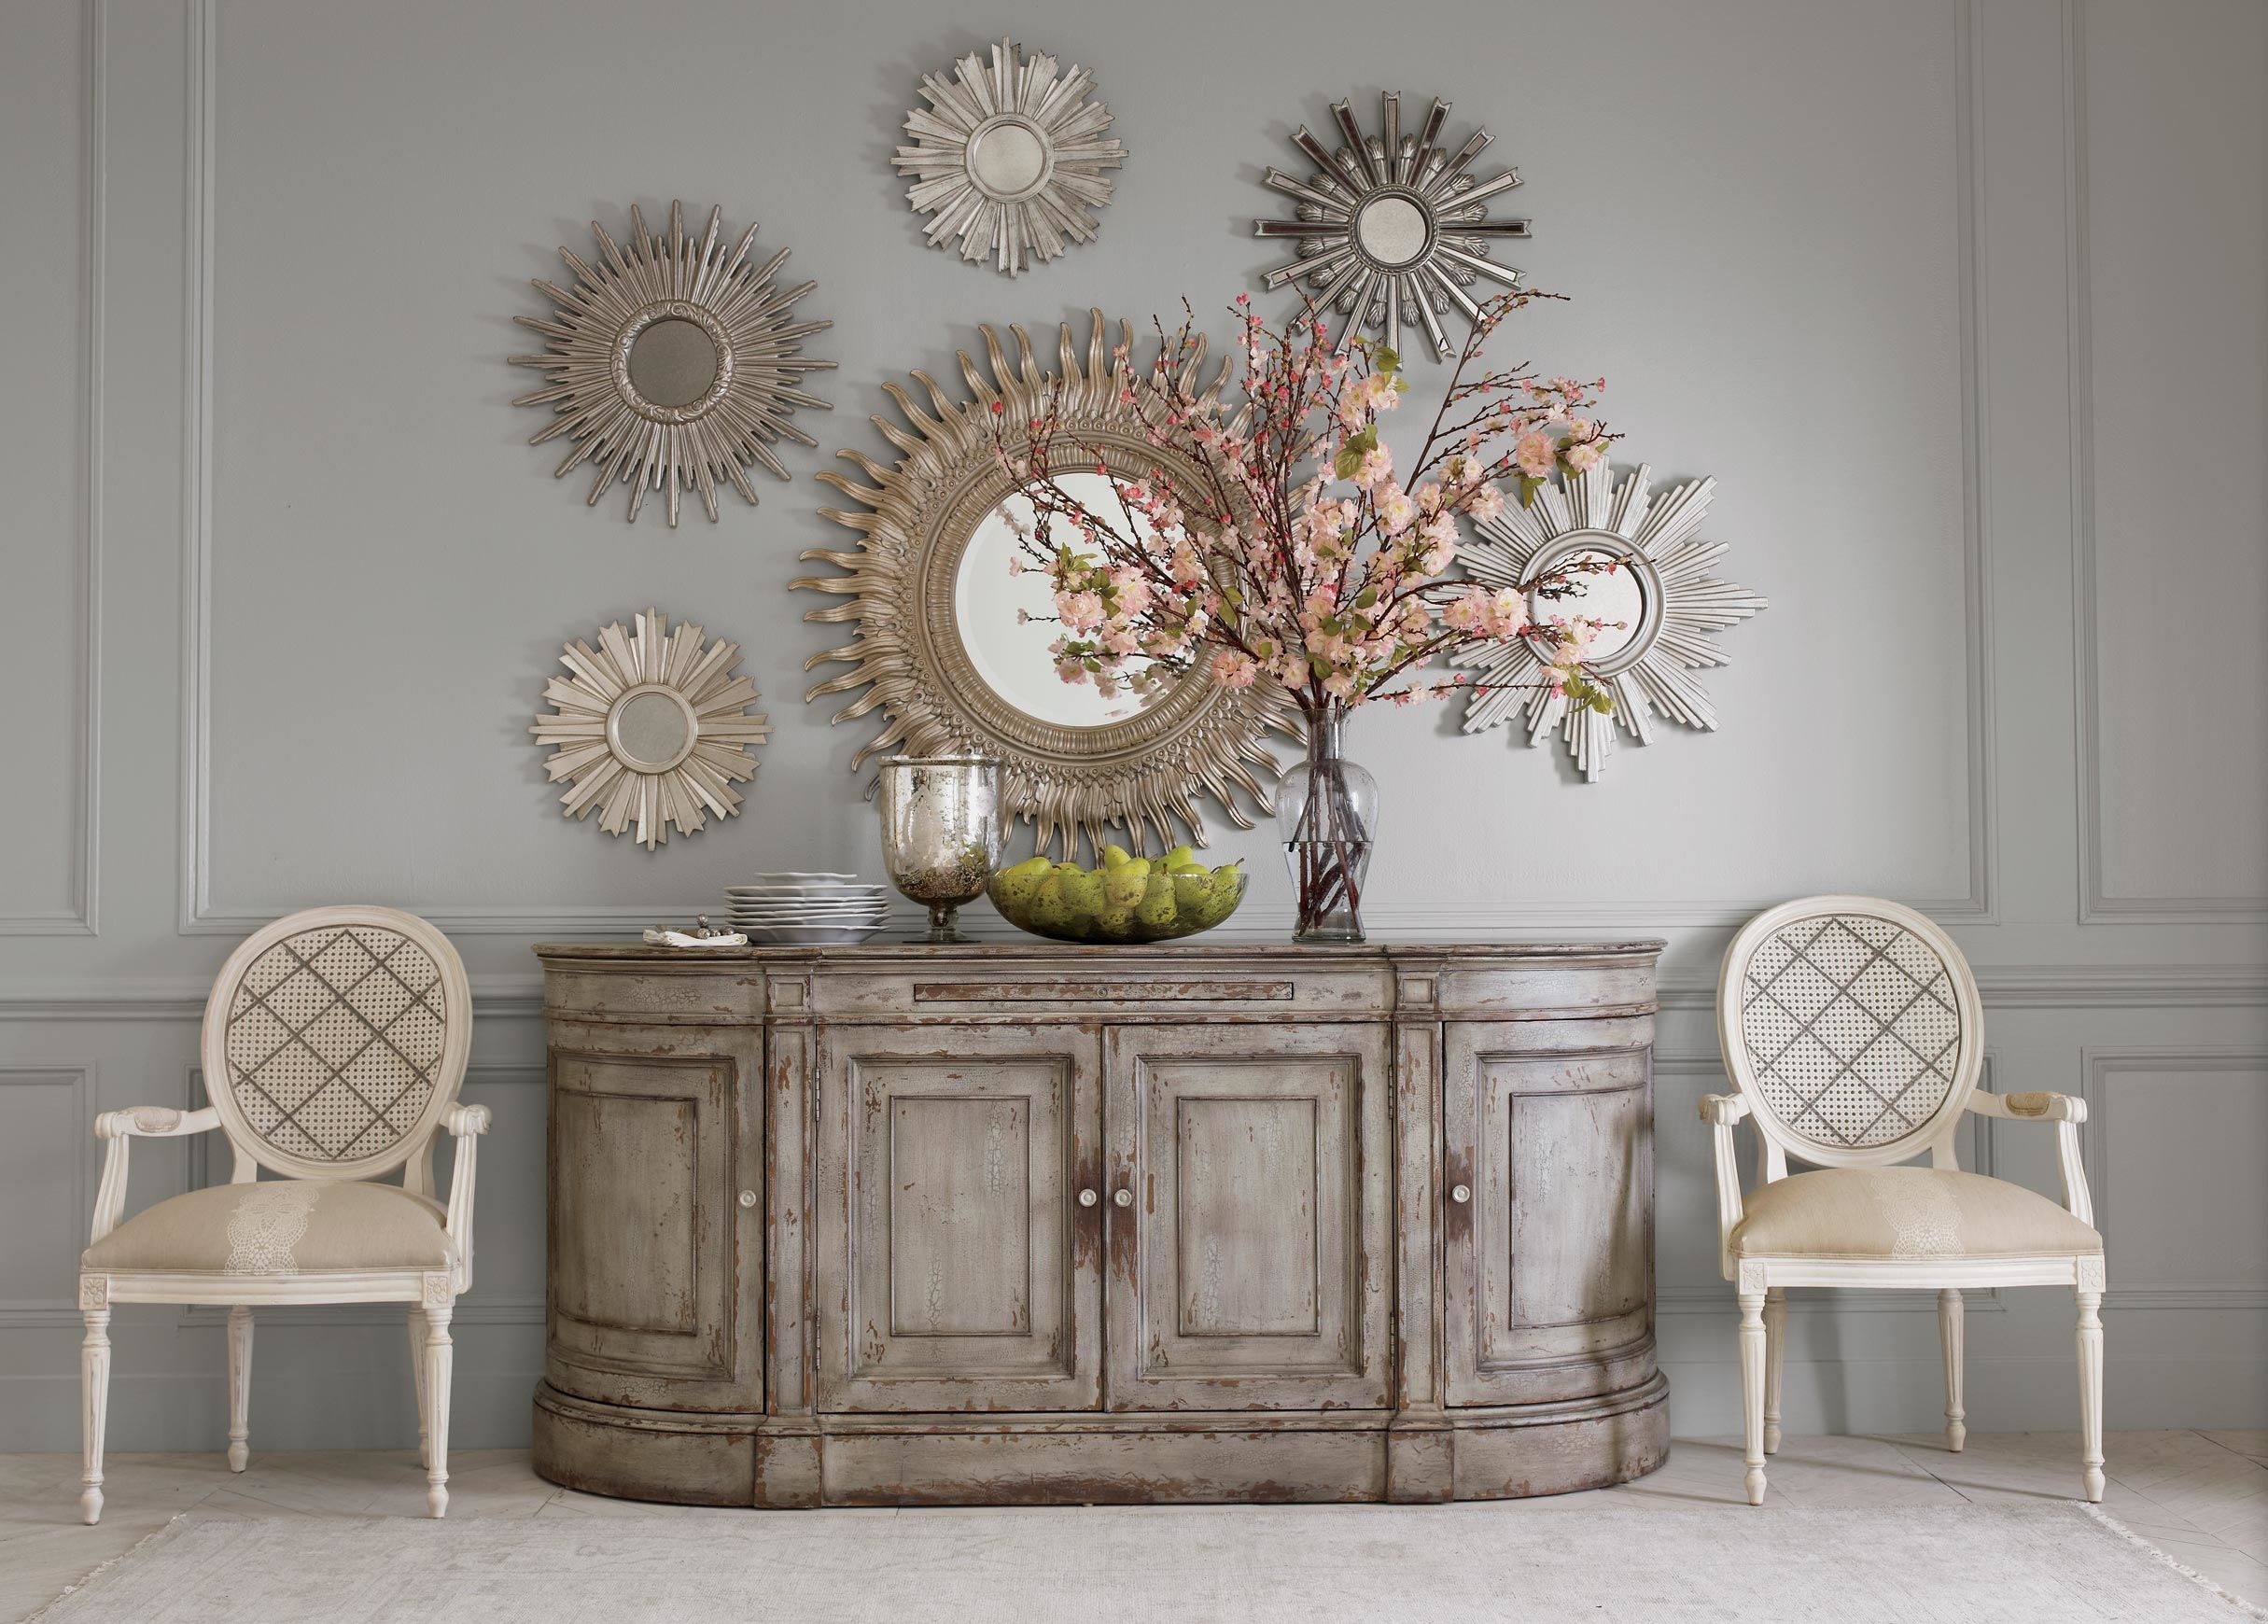 Cool sunburst mirrors with rustic table and night lap combined plus luxury wall